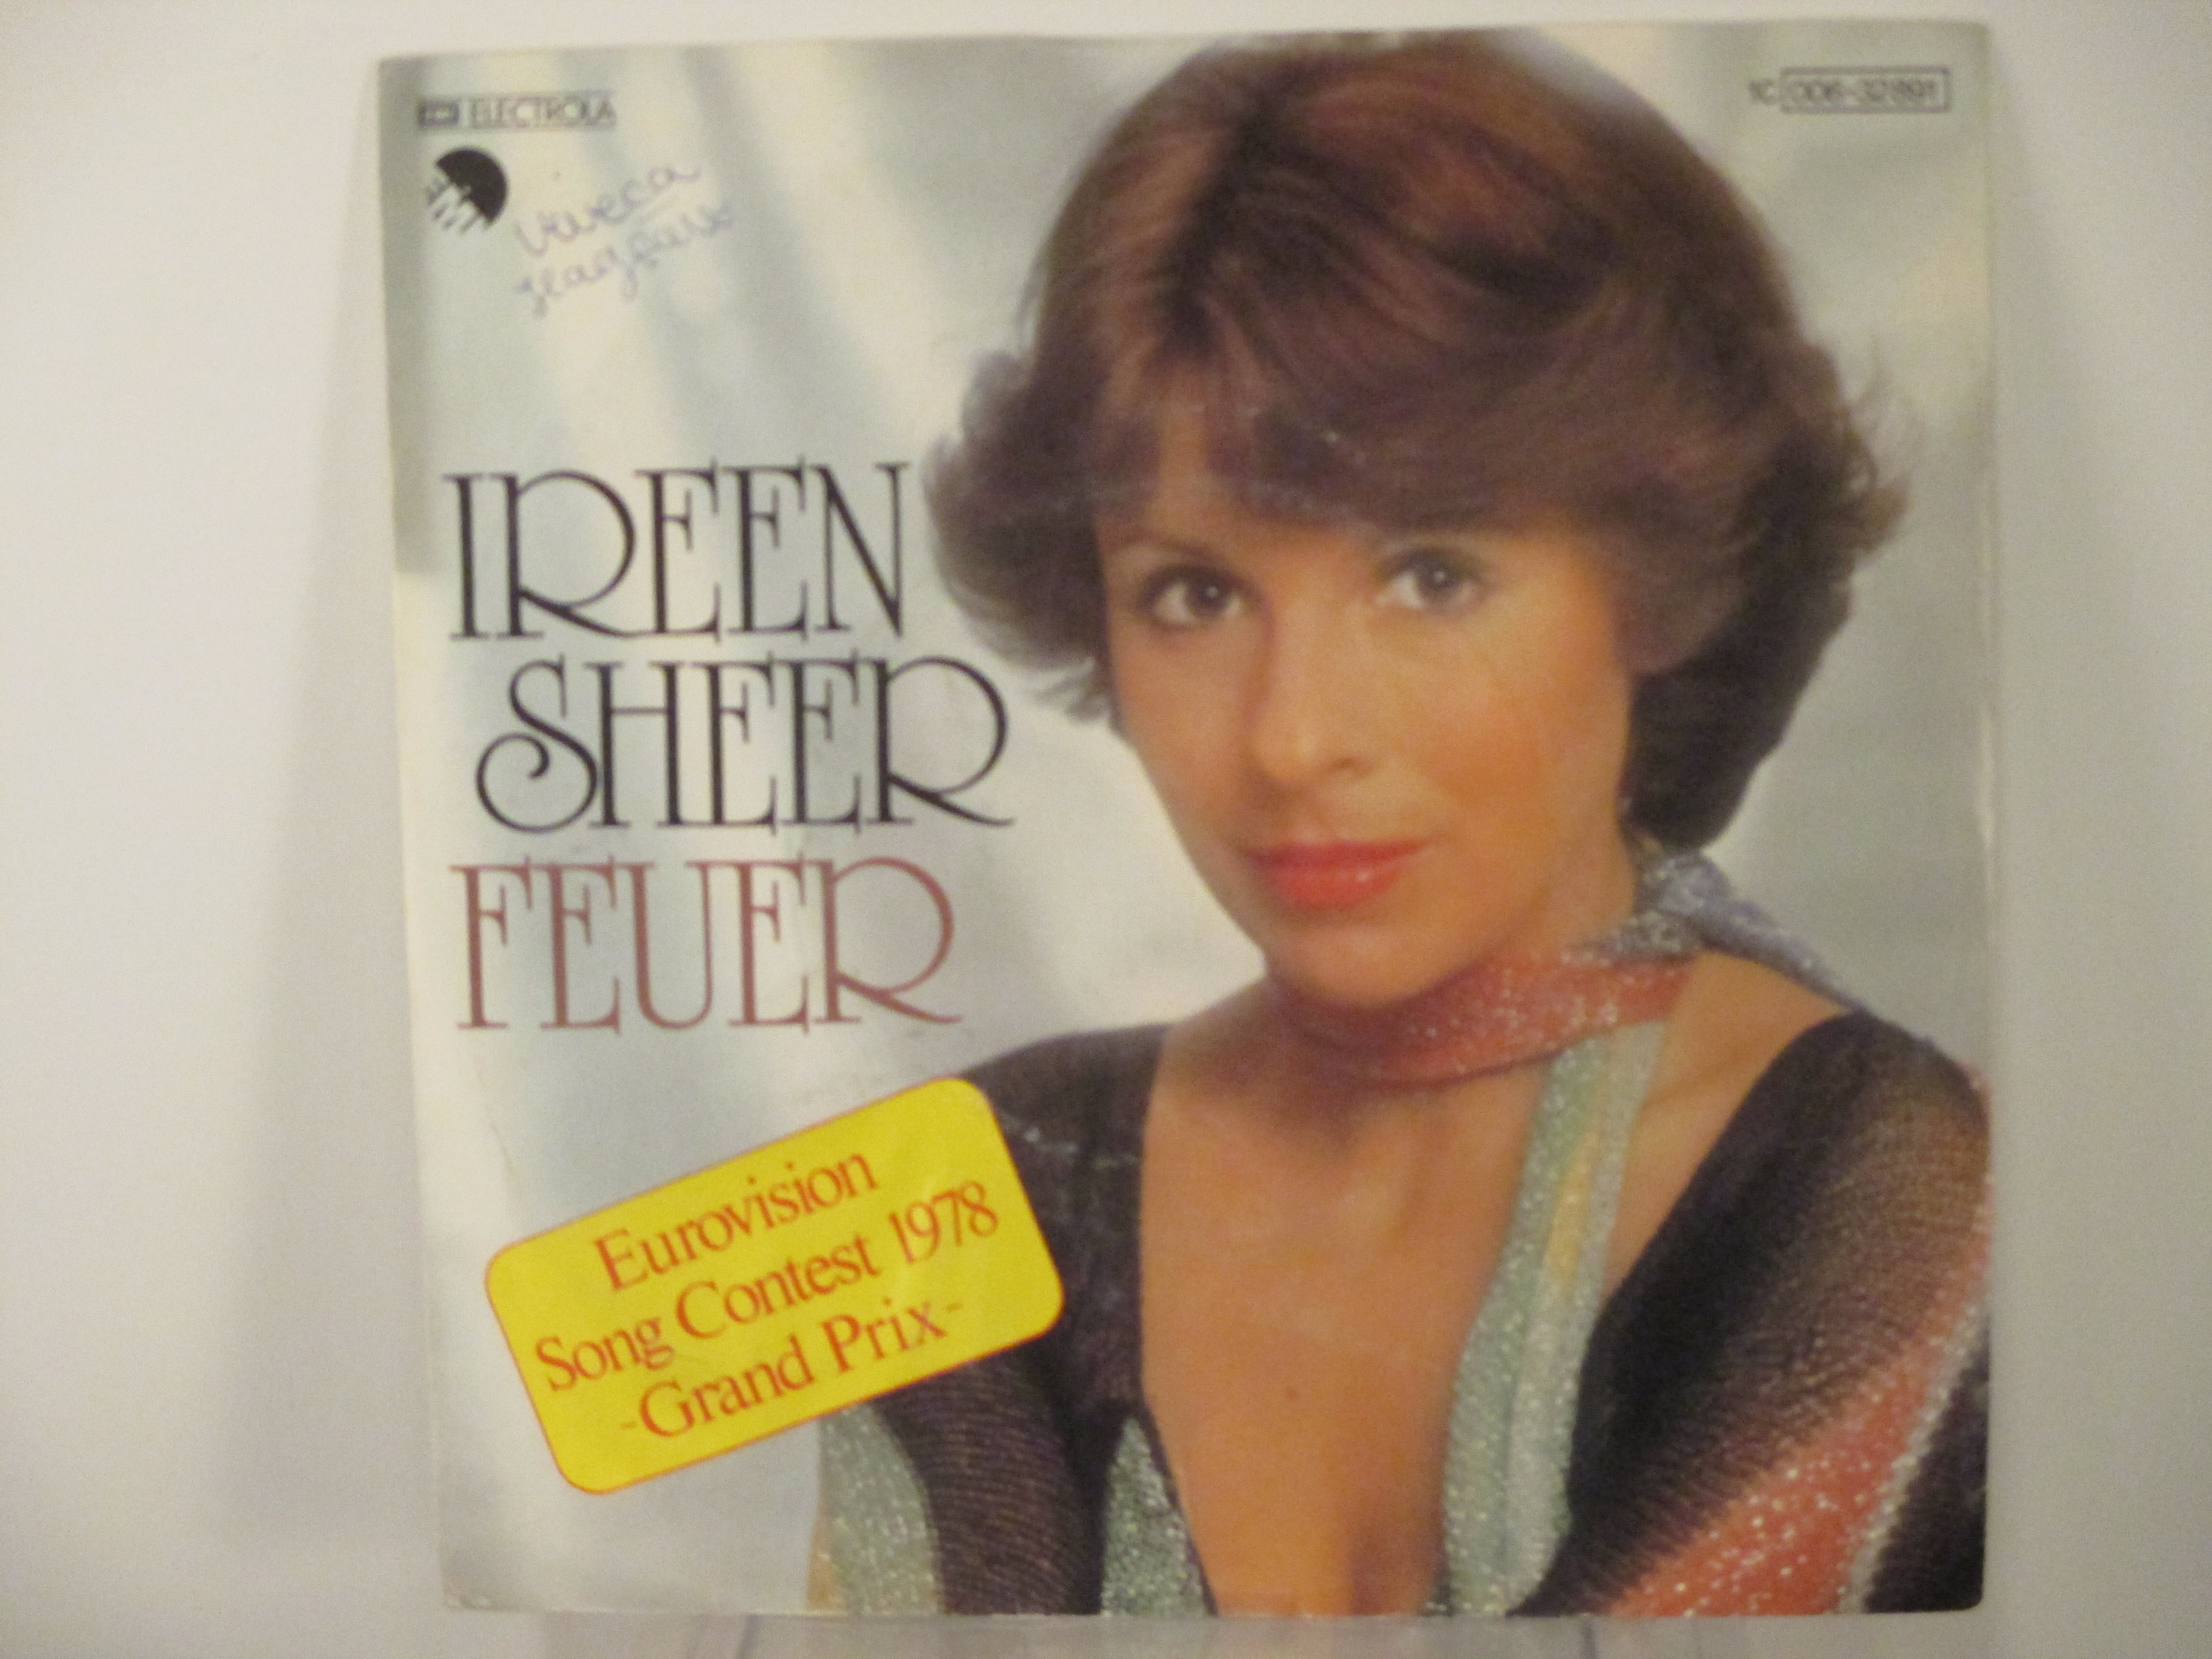 IREEN SHEER : Feuer / Oh, mon amour